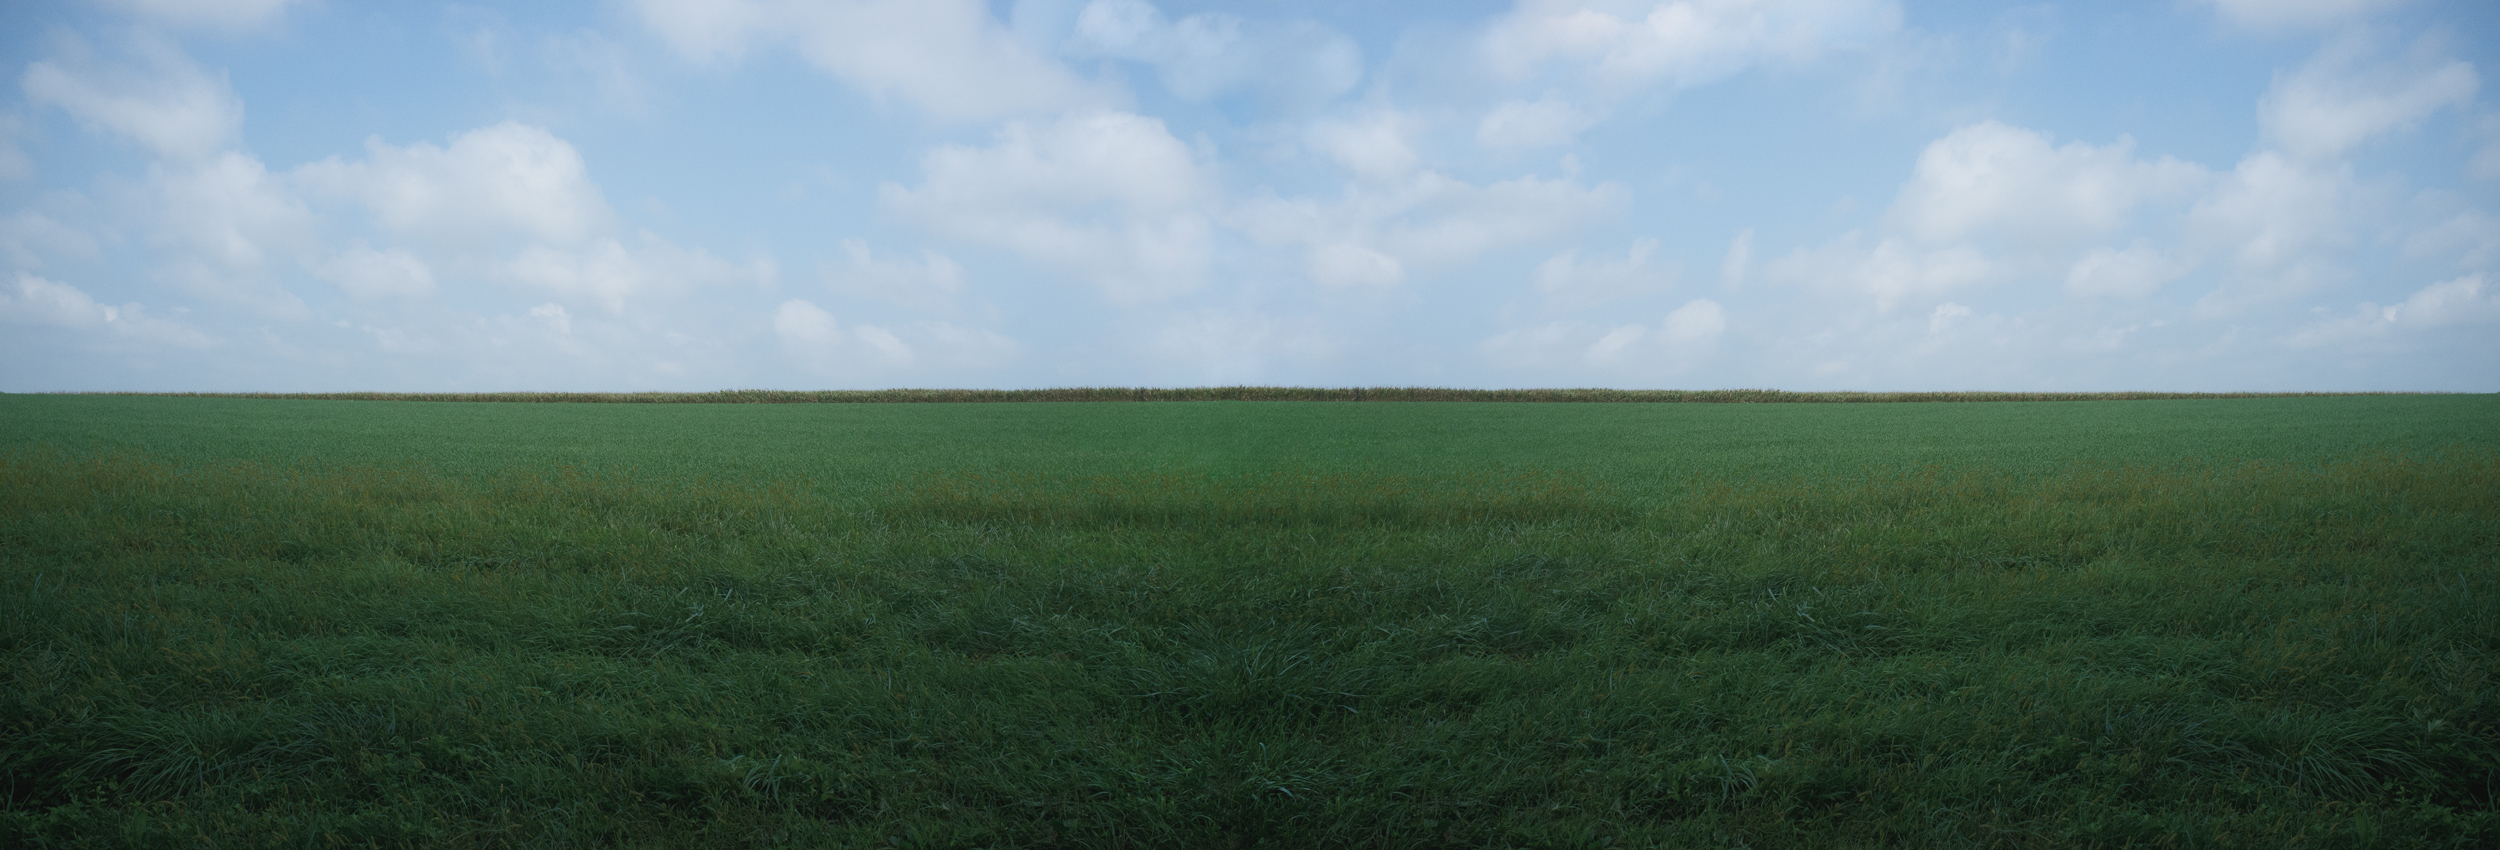 Water Mill Field, 2018, photo on aluminum, 72 x 23.75 in, edition of 5 (2 available), $5,000